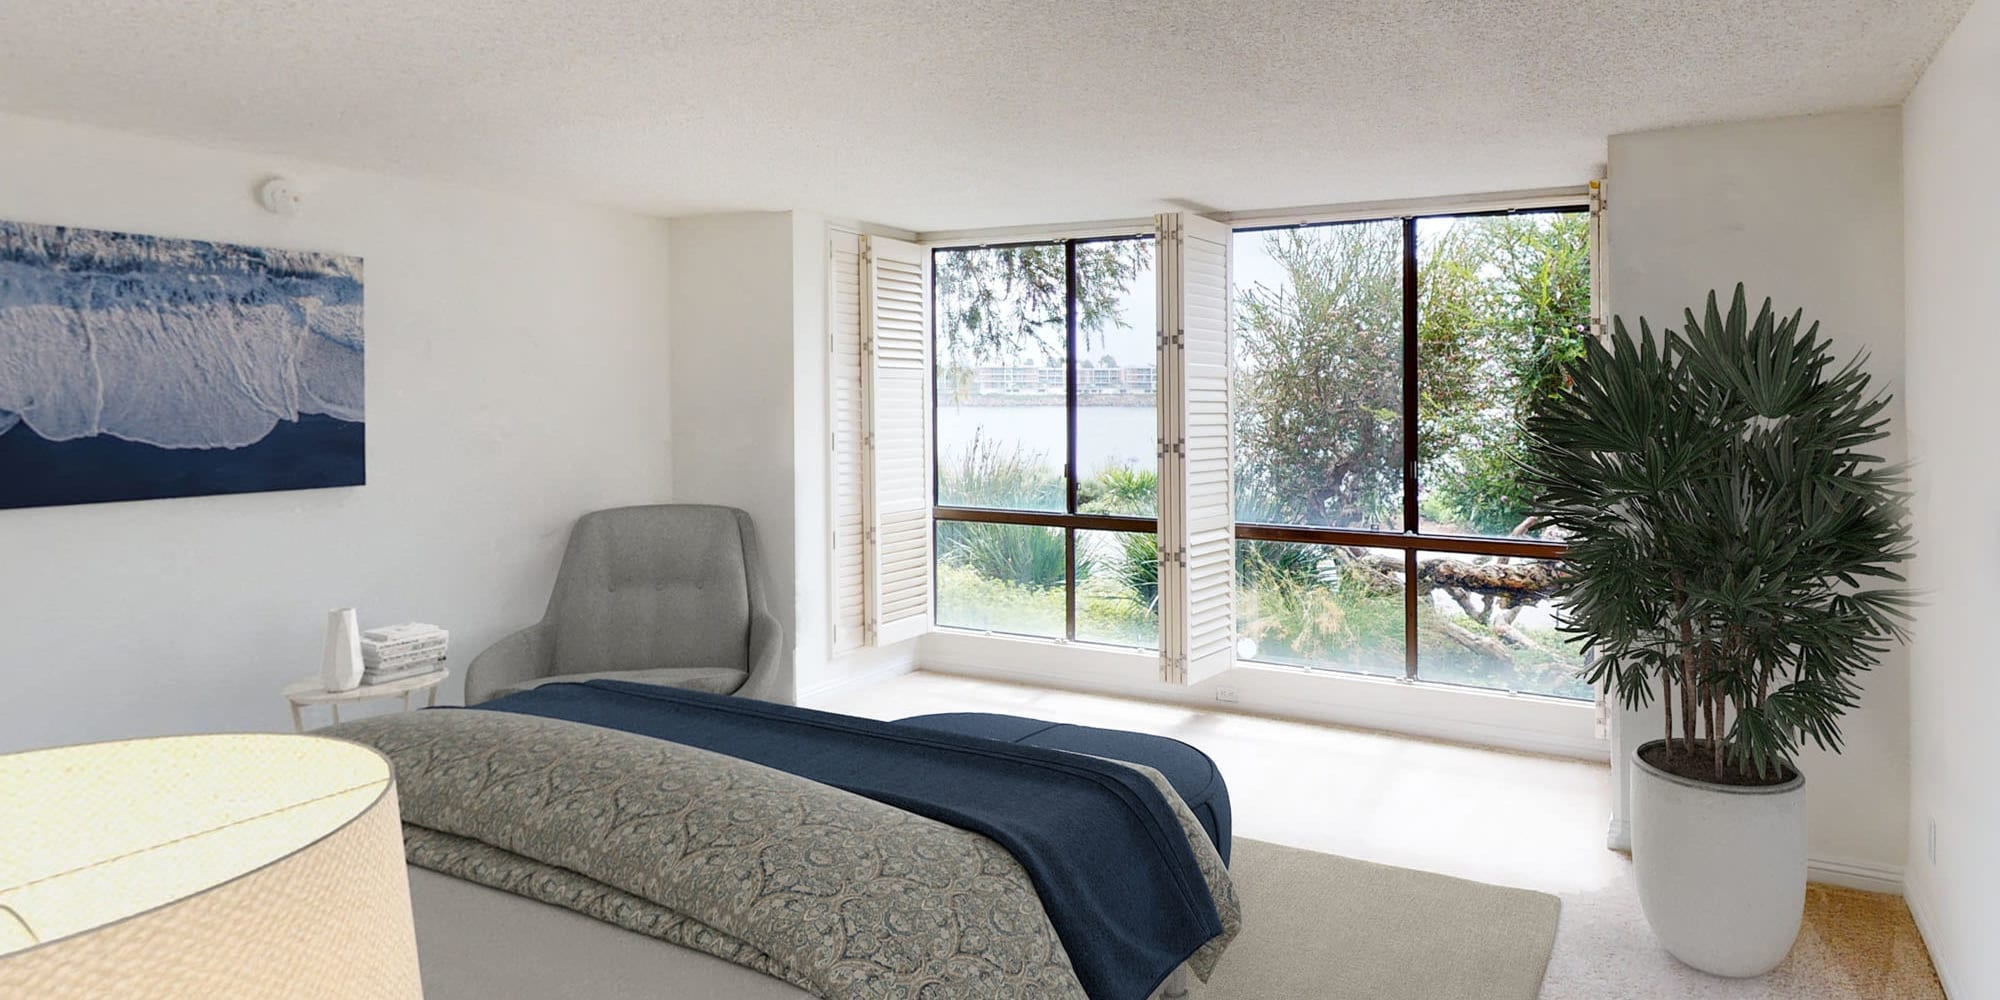 Bay windows in a model three-bedroom home's primary suite at Mariners Village in Marina del Rey, California